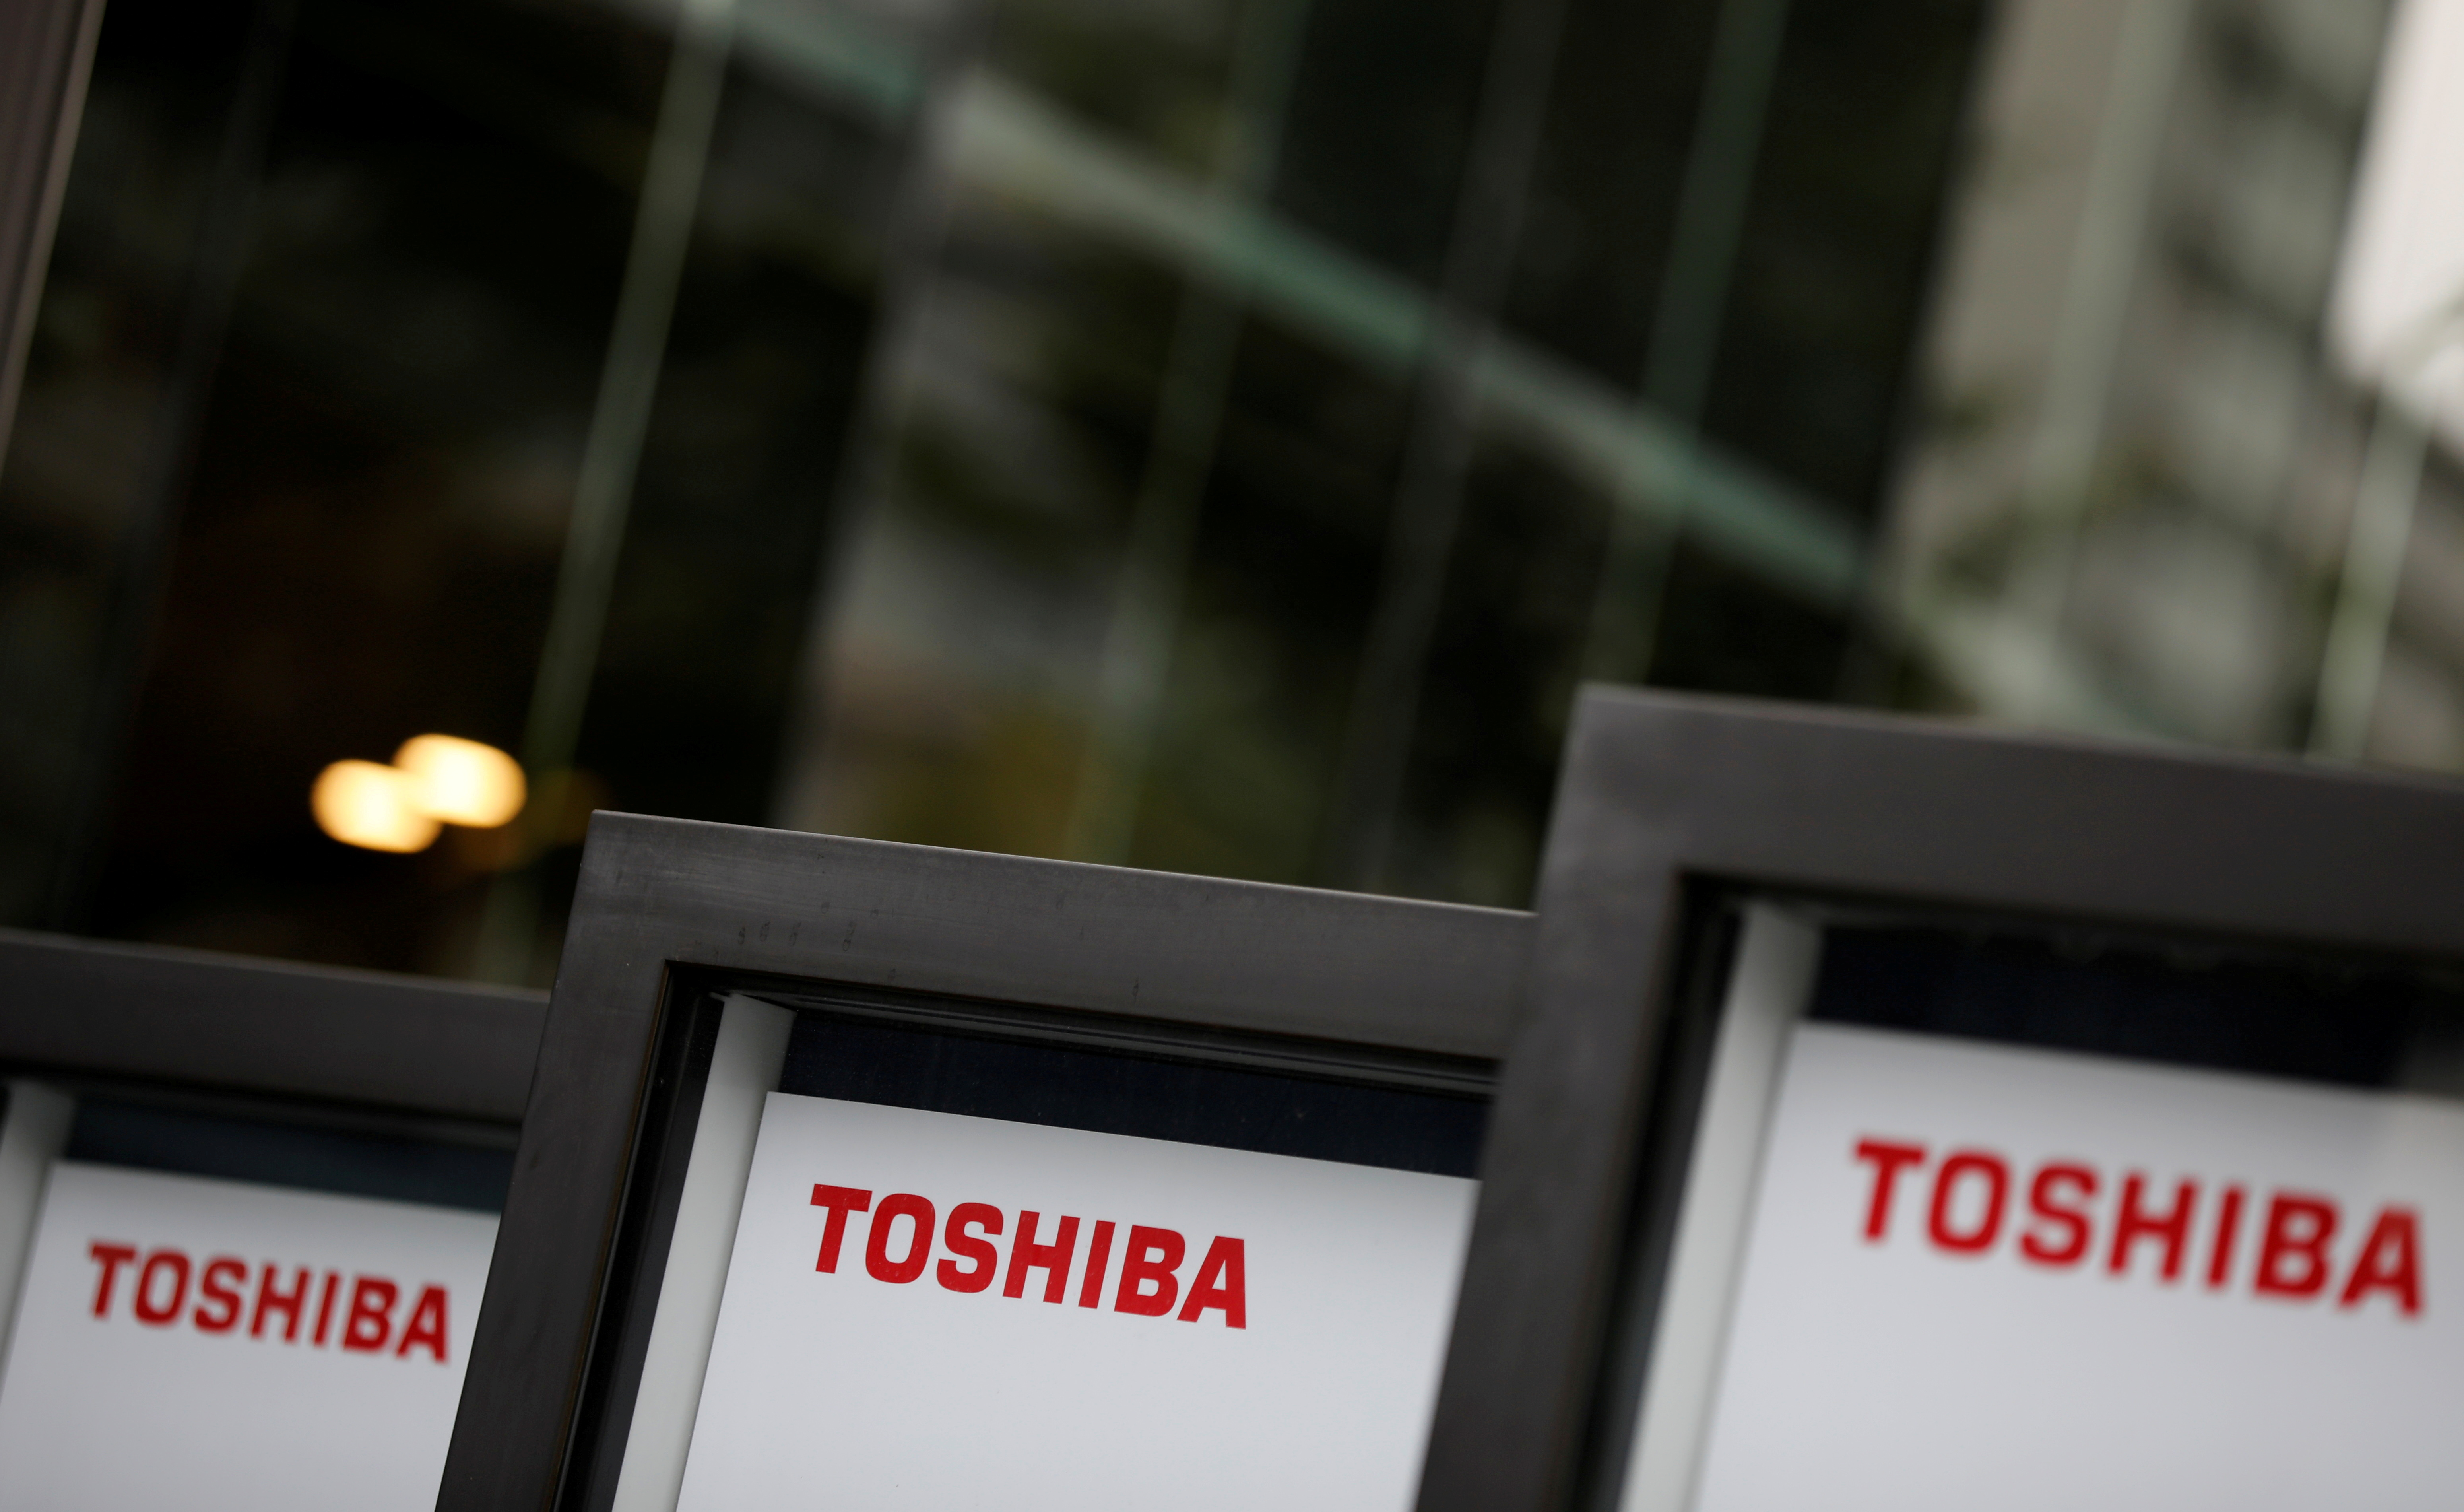 Toshiba logos are pictured at Toshiba Corp's annual general meeting  in Tokyo, Japan, June 25, 2021.   REUTERS/Kim Kyung-Hoon/File Photo